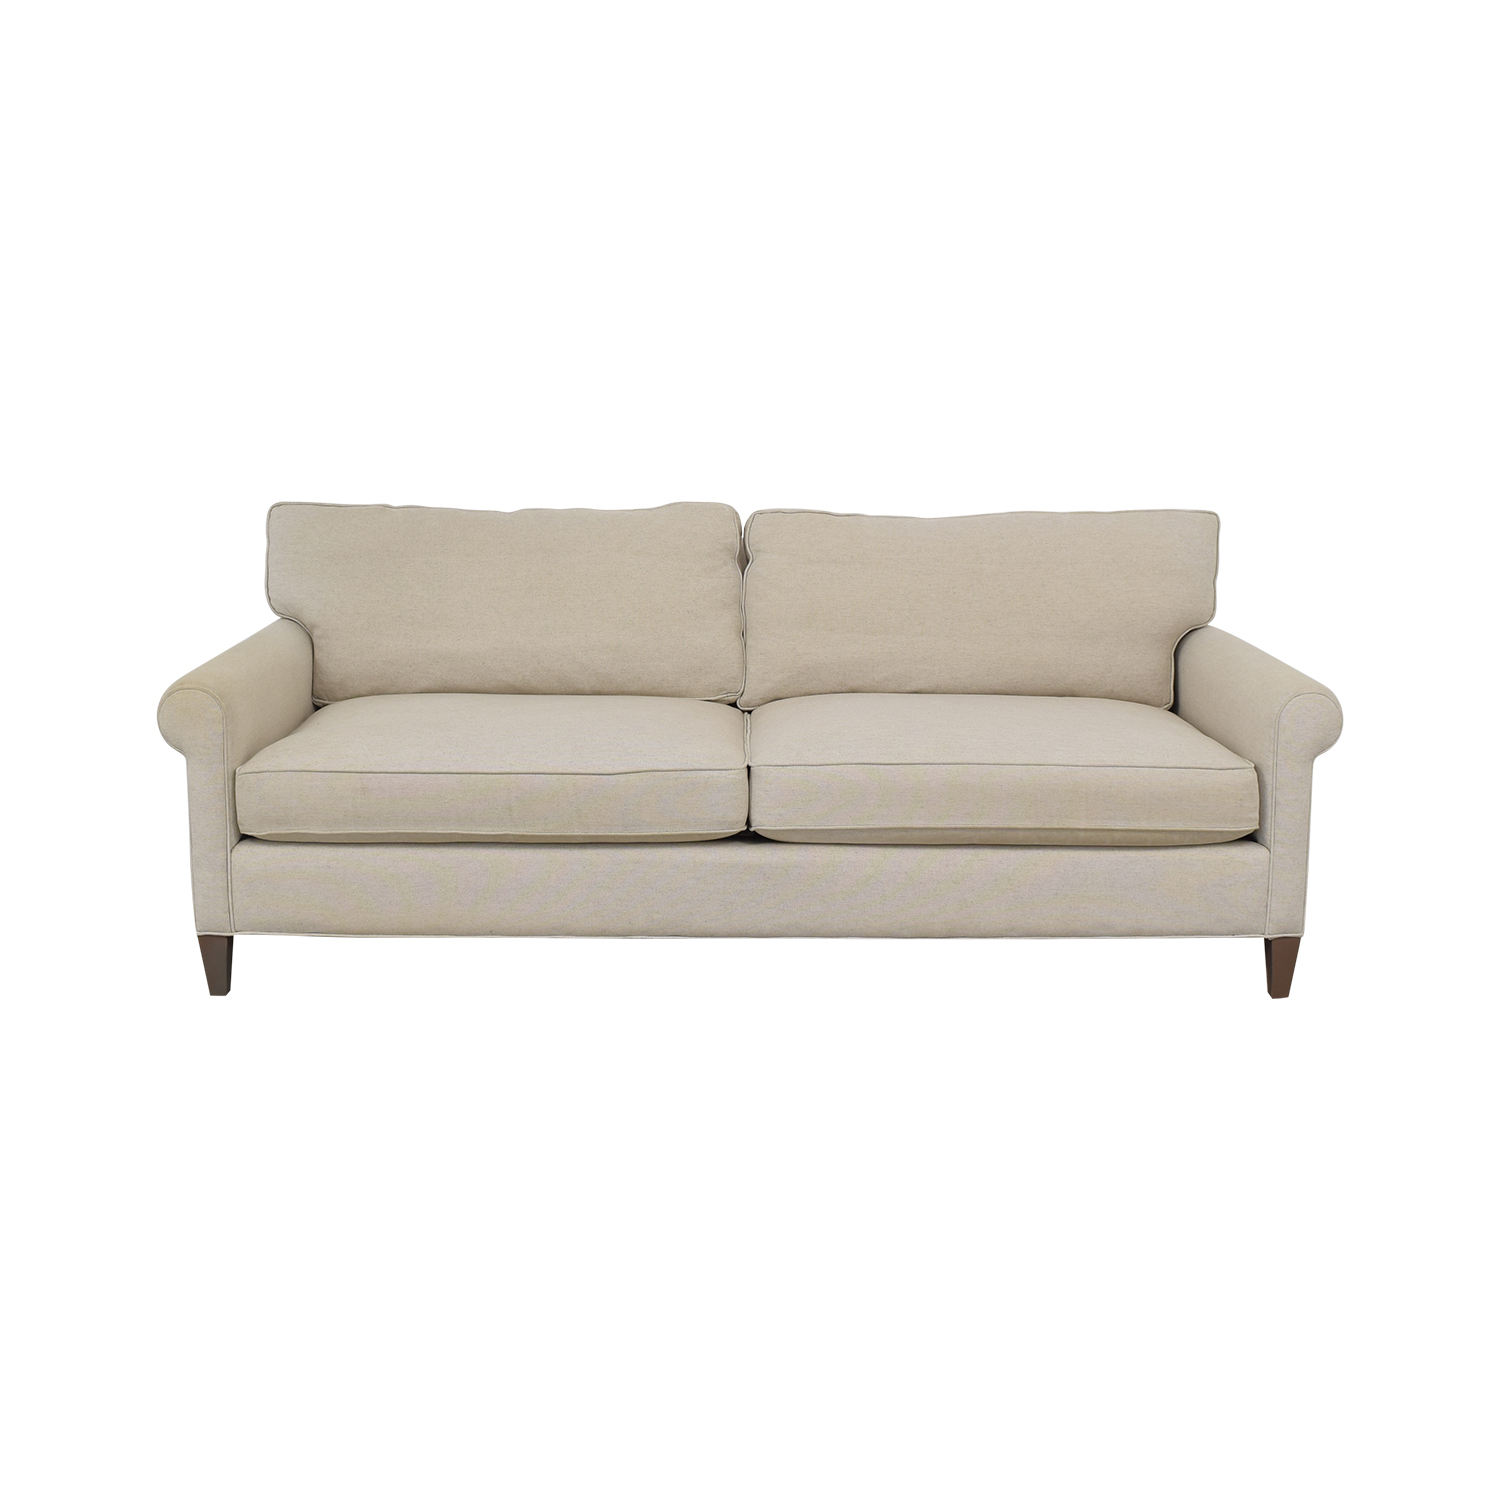 Crate and Barrel Roll Arm Sofa / Classic Sofas